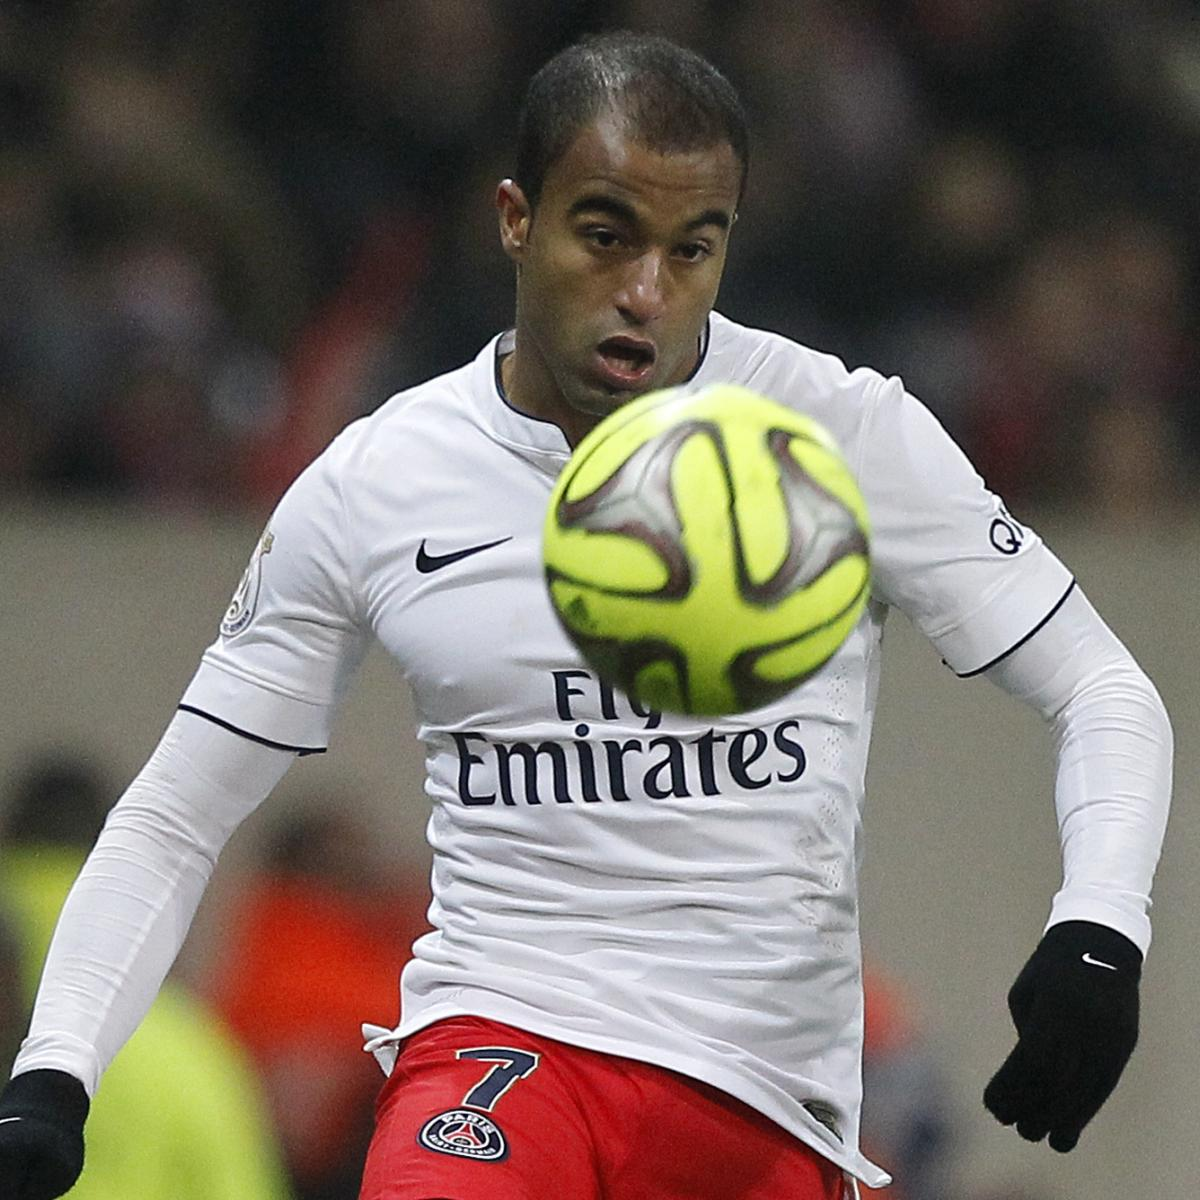 Lucas Moura To Psg Price: Lucas Moura Must Now Prove PSG Right For Handing Him New